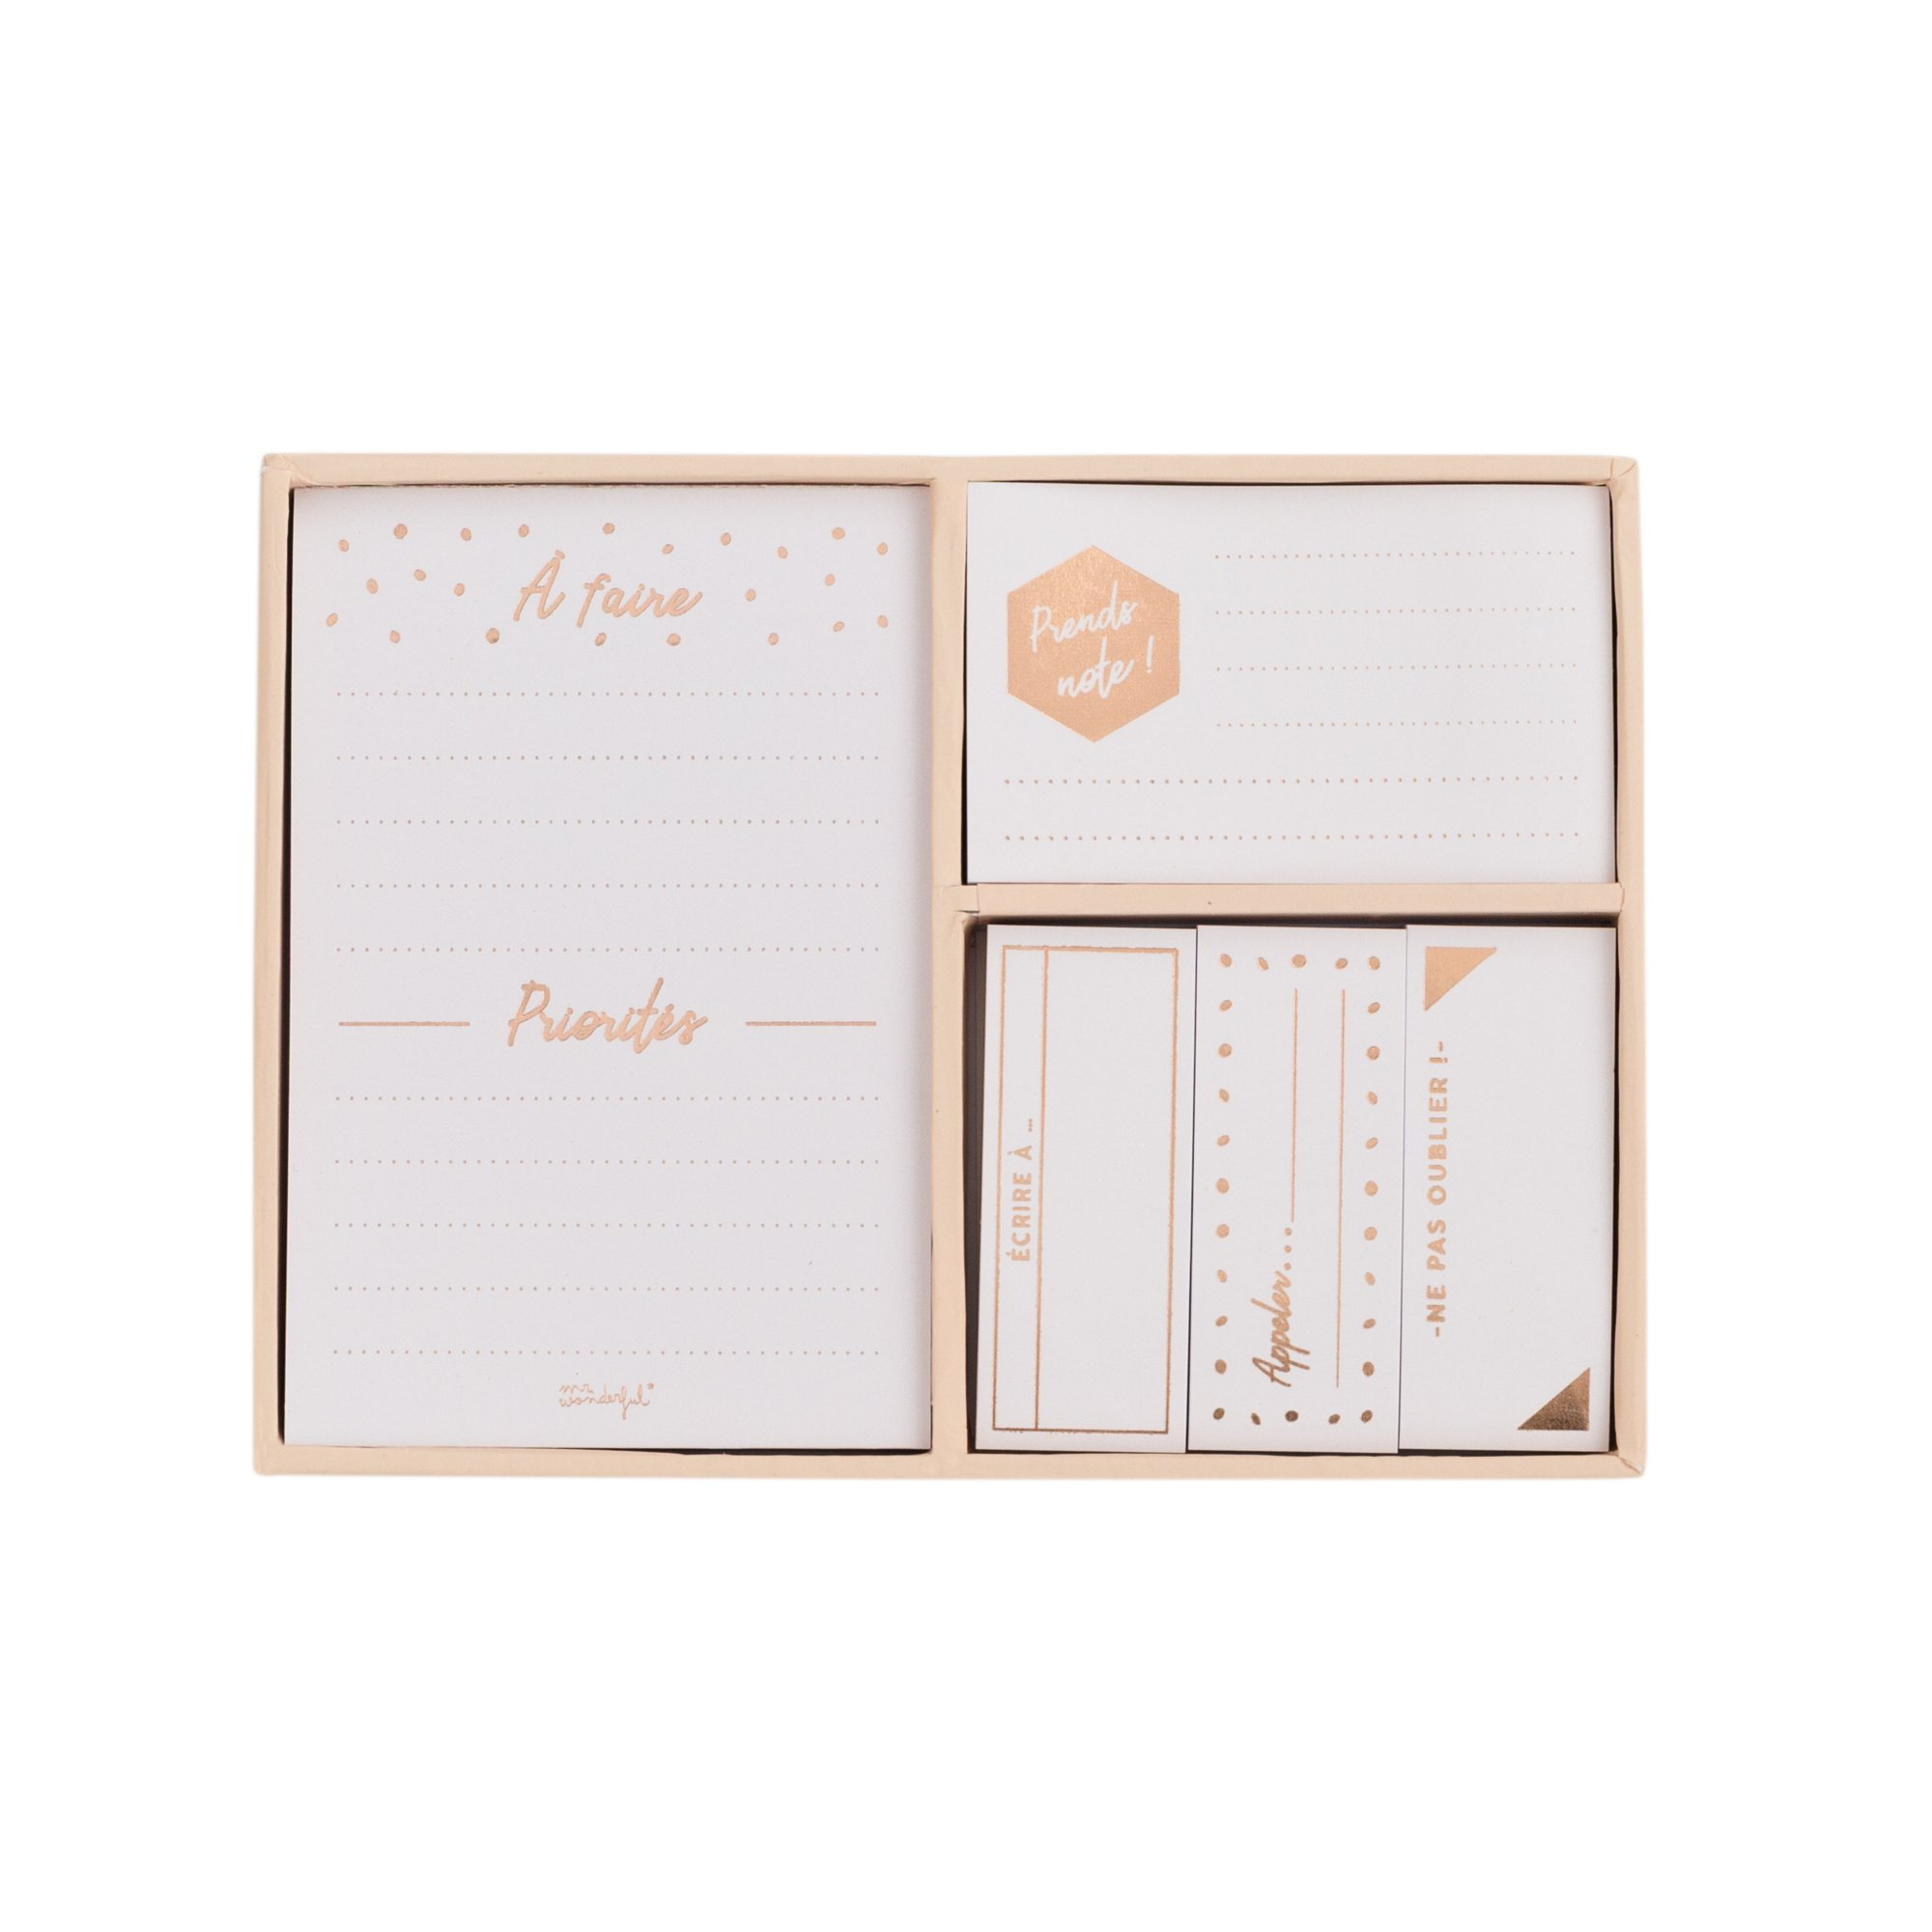 Mr. Wonderful woa08852fr Notebook Set in Copper Collection